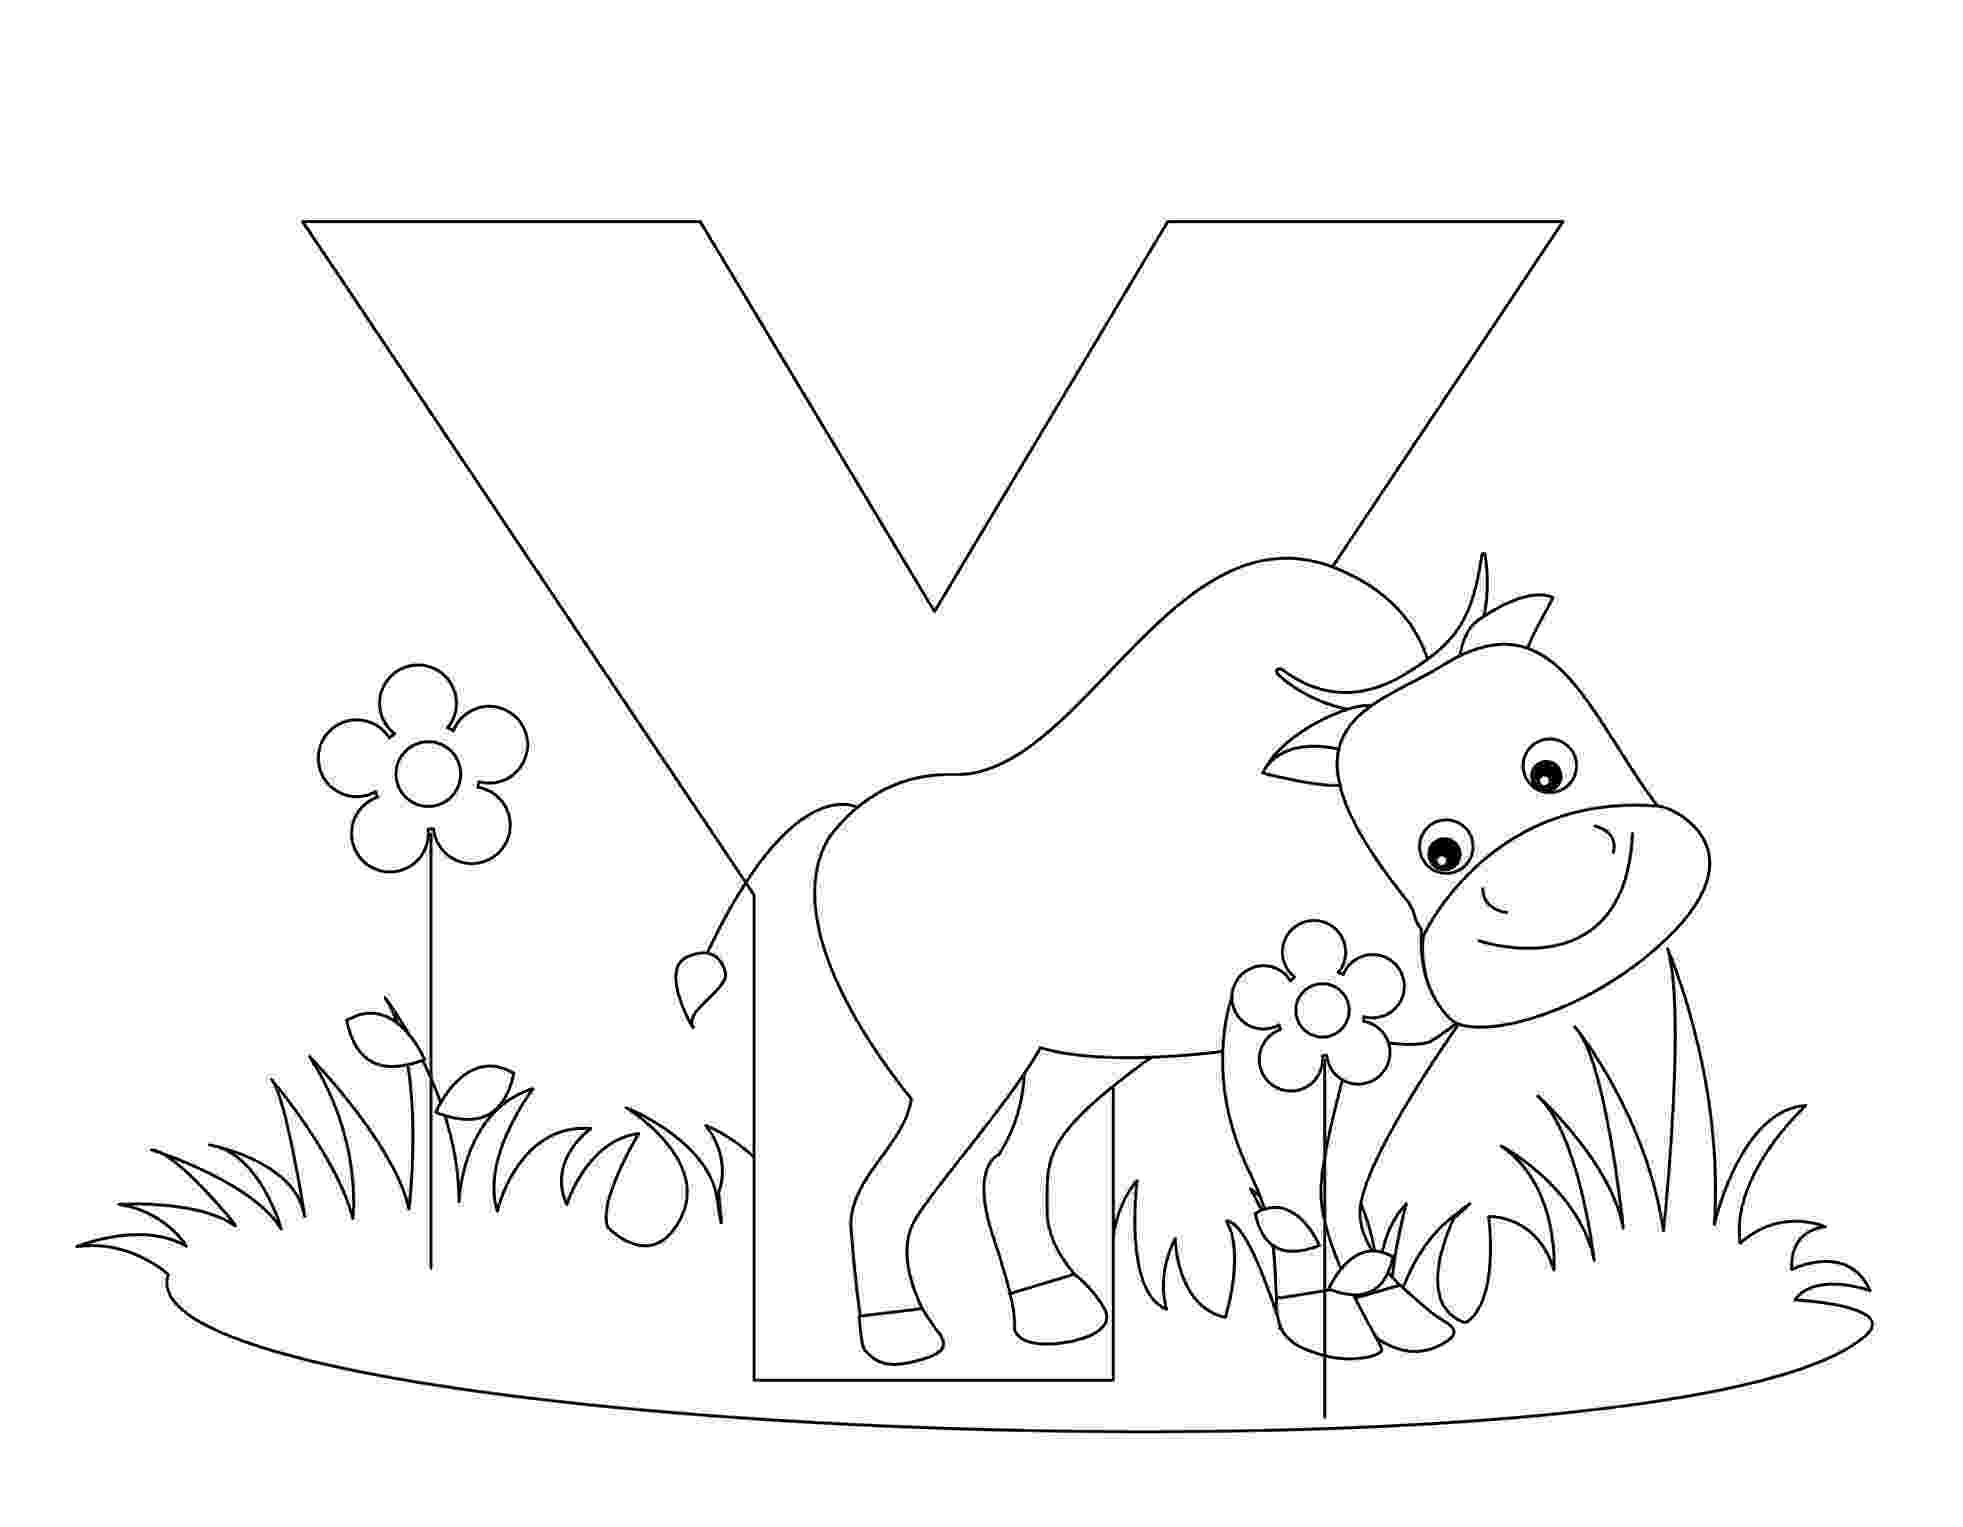 free alphabet coloring pages free printable alphabet coloring pages for kids best pages free coloring alphabet 1 1